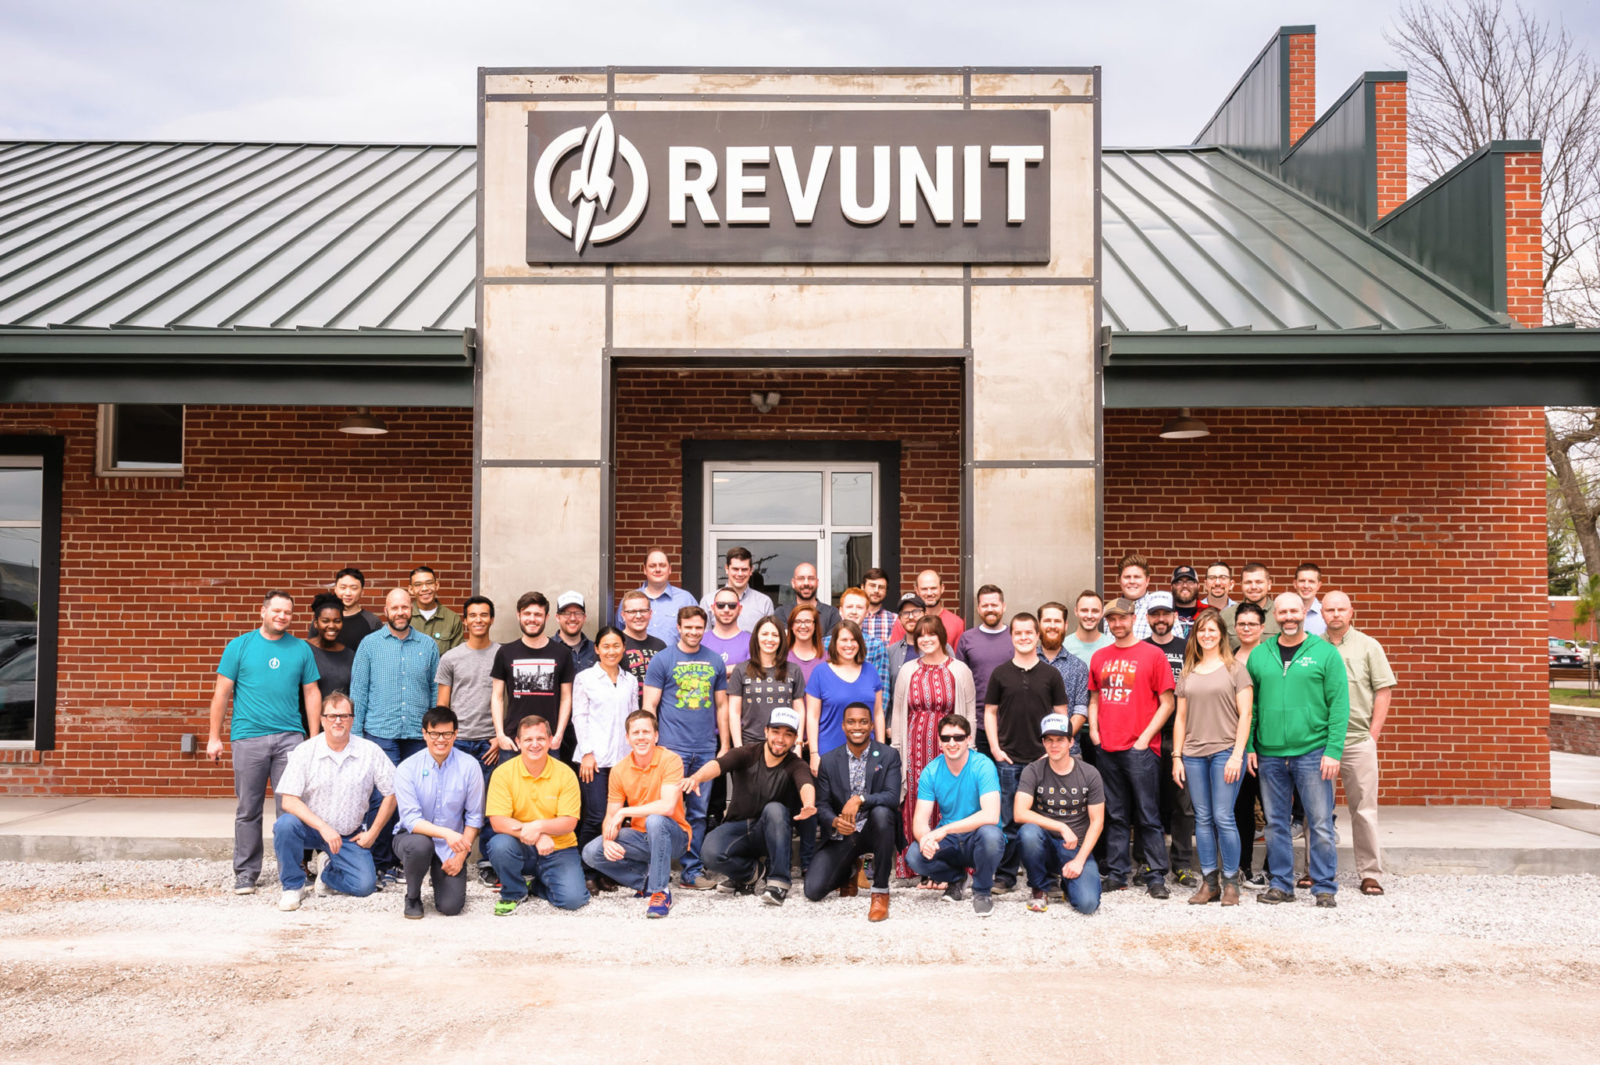 RevUnit Company photo in Bentonville AR during All Hands 2017